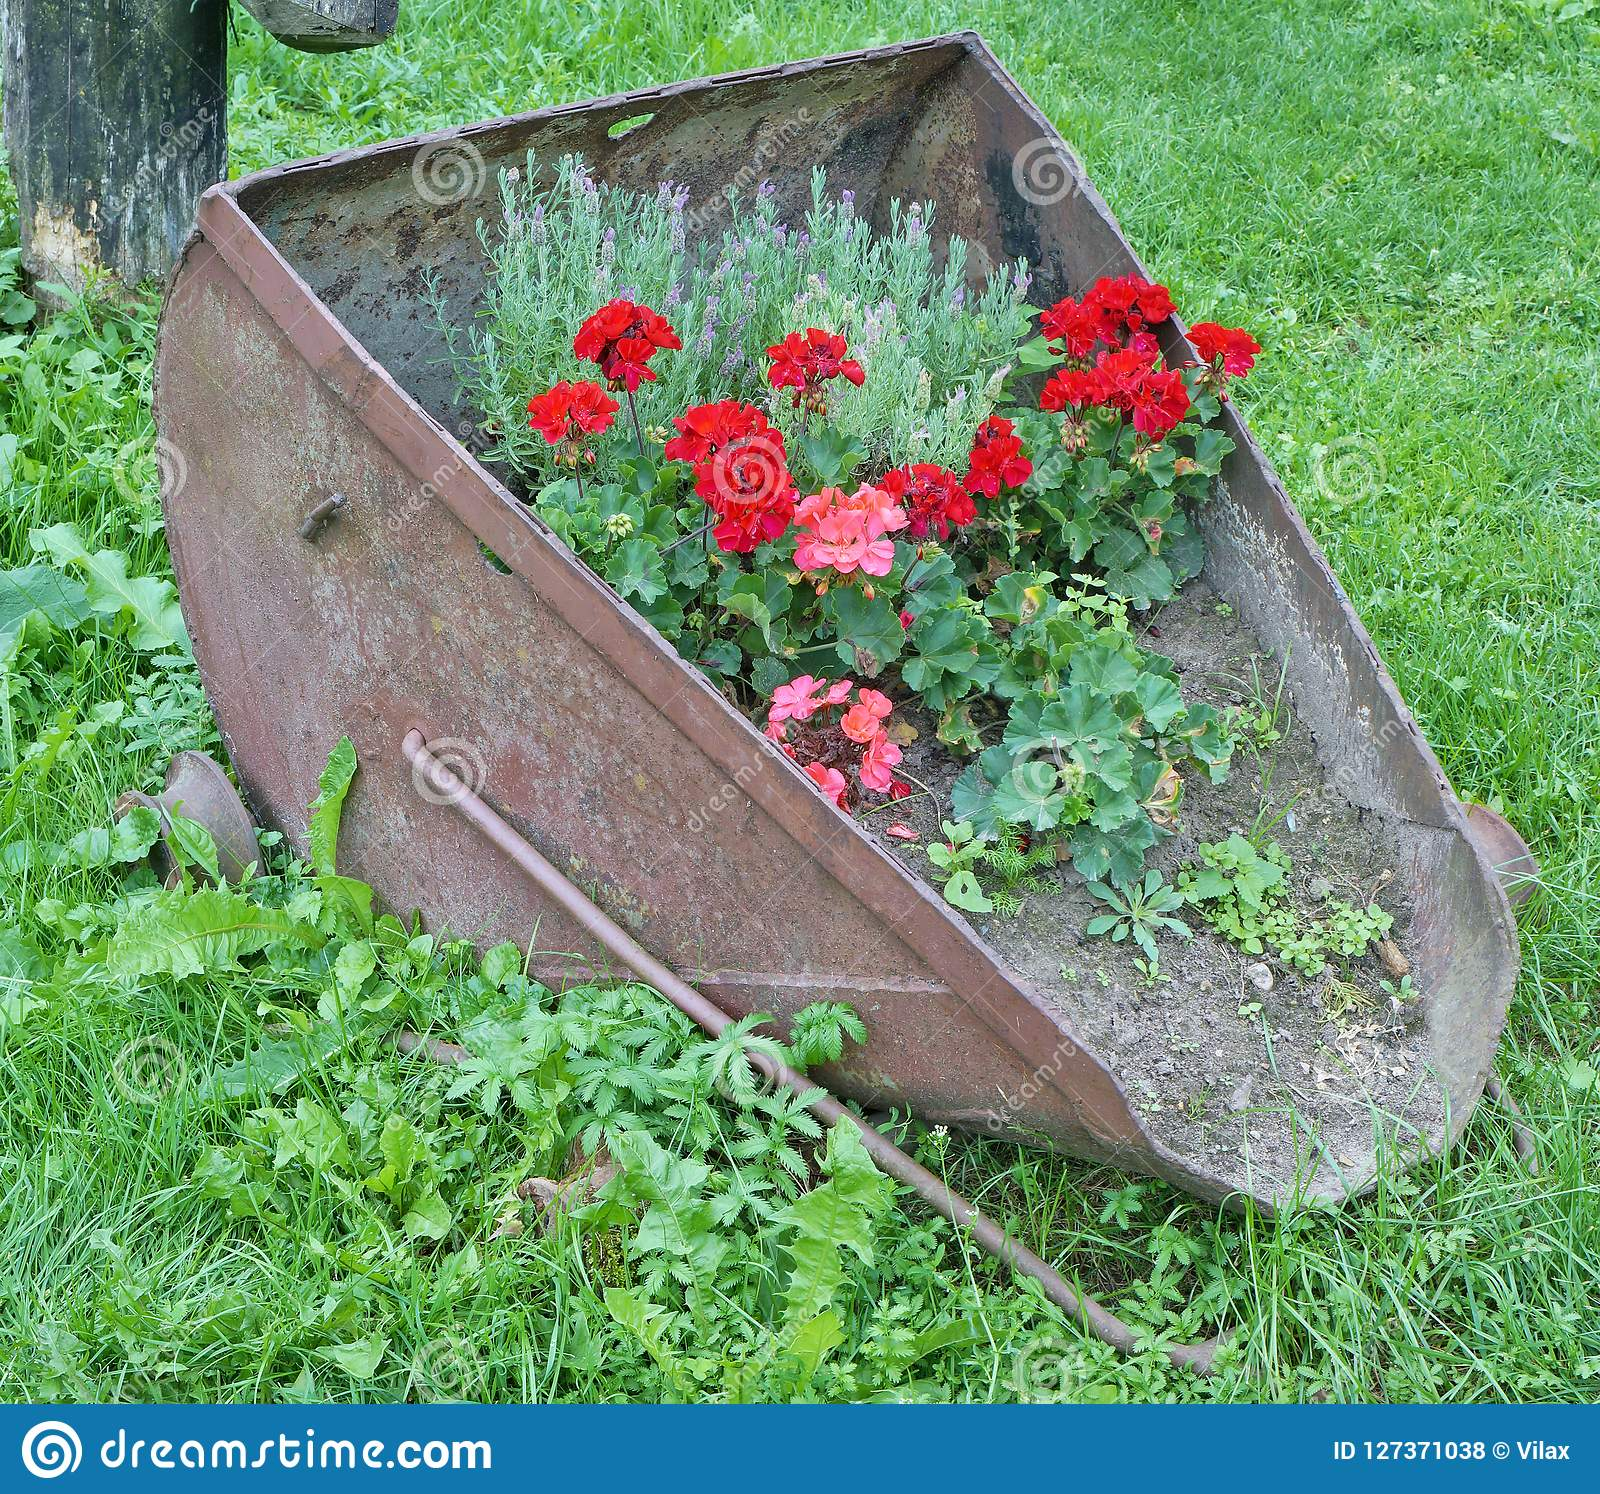 The farmer planted geranium in an old rusty metal bucket of a br